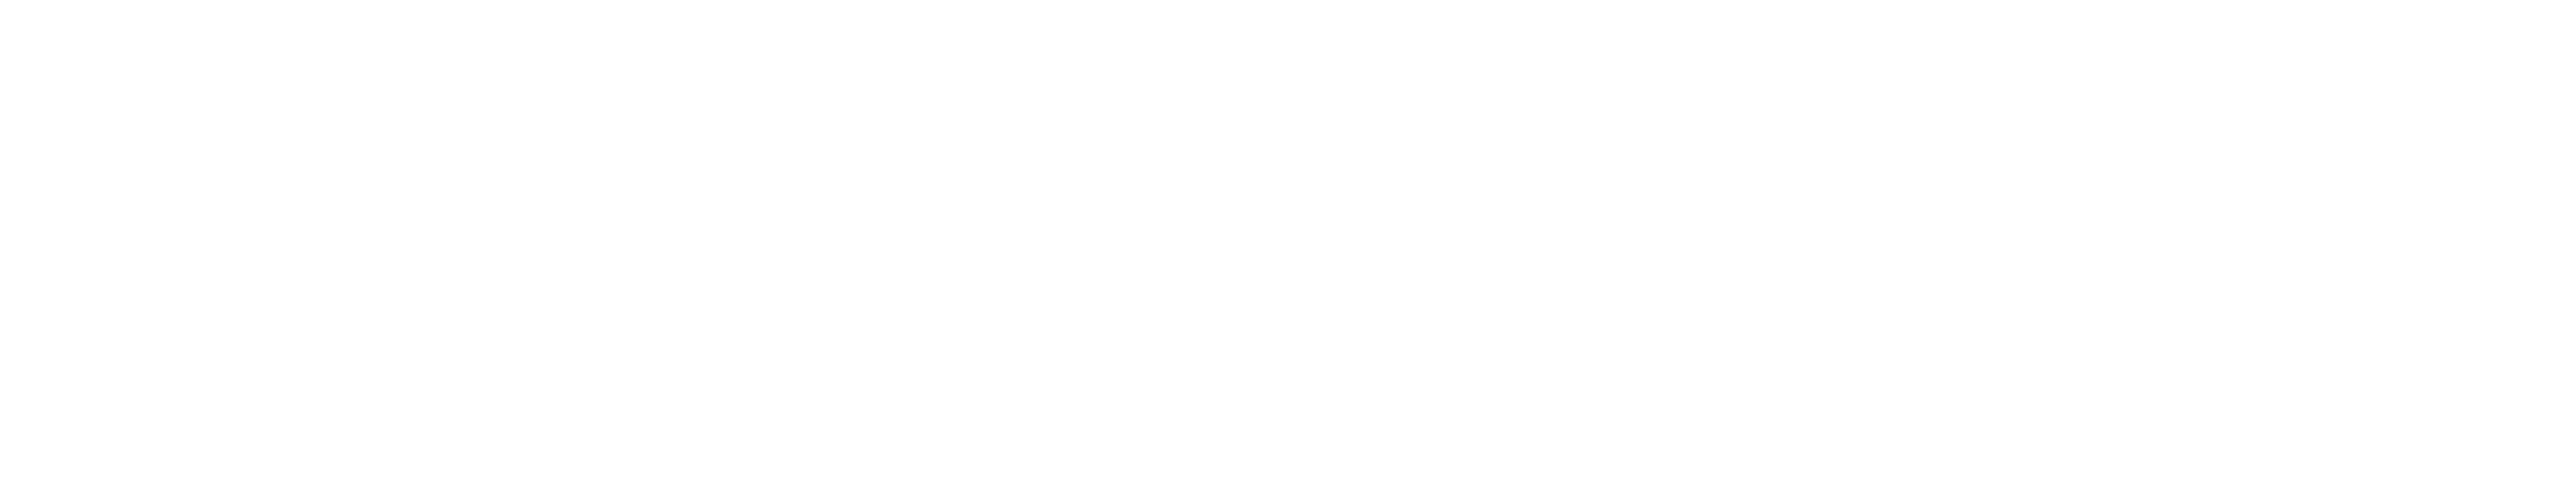 Paragon Real Estate logo